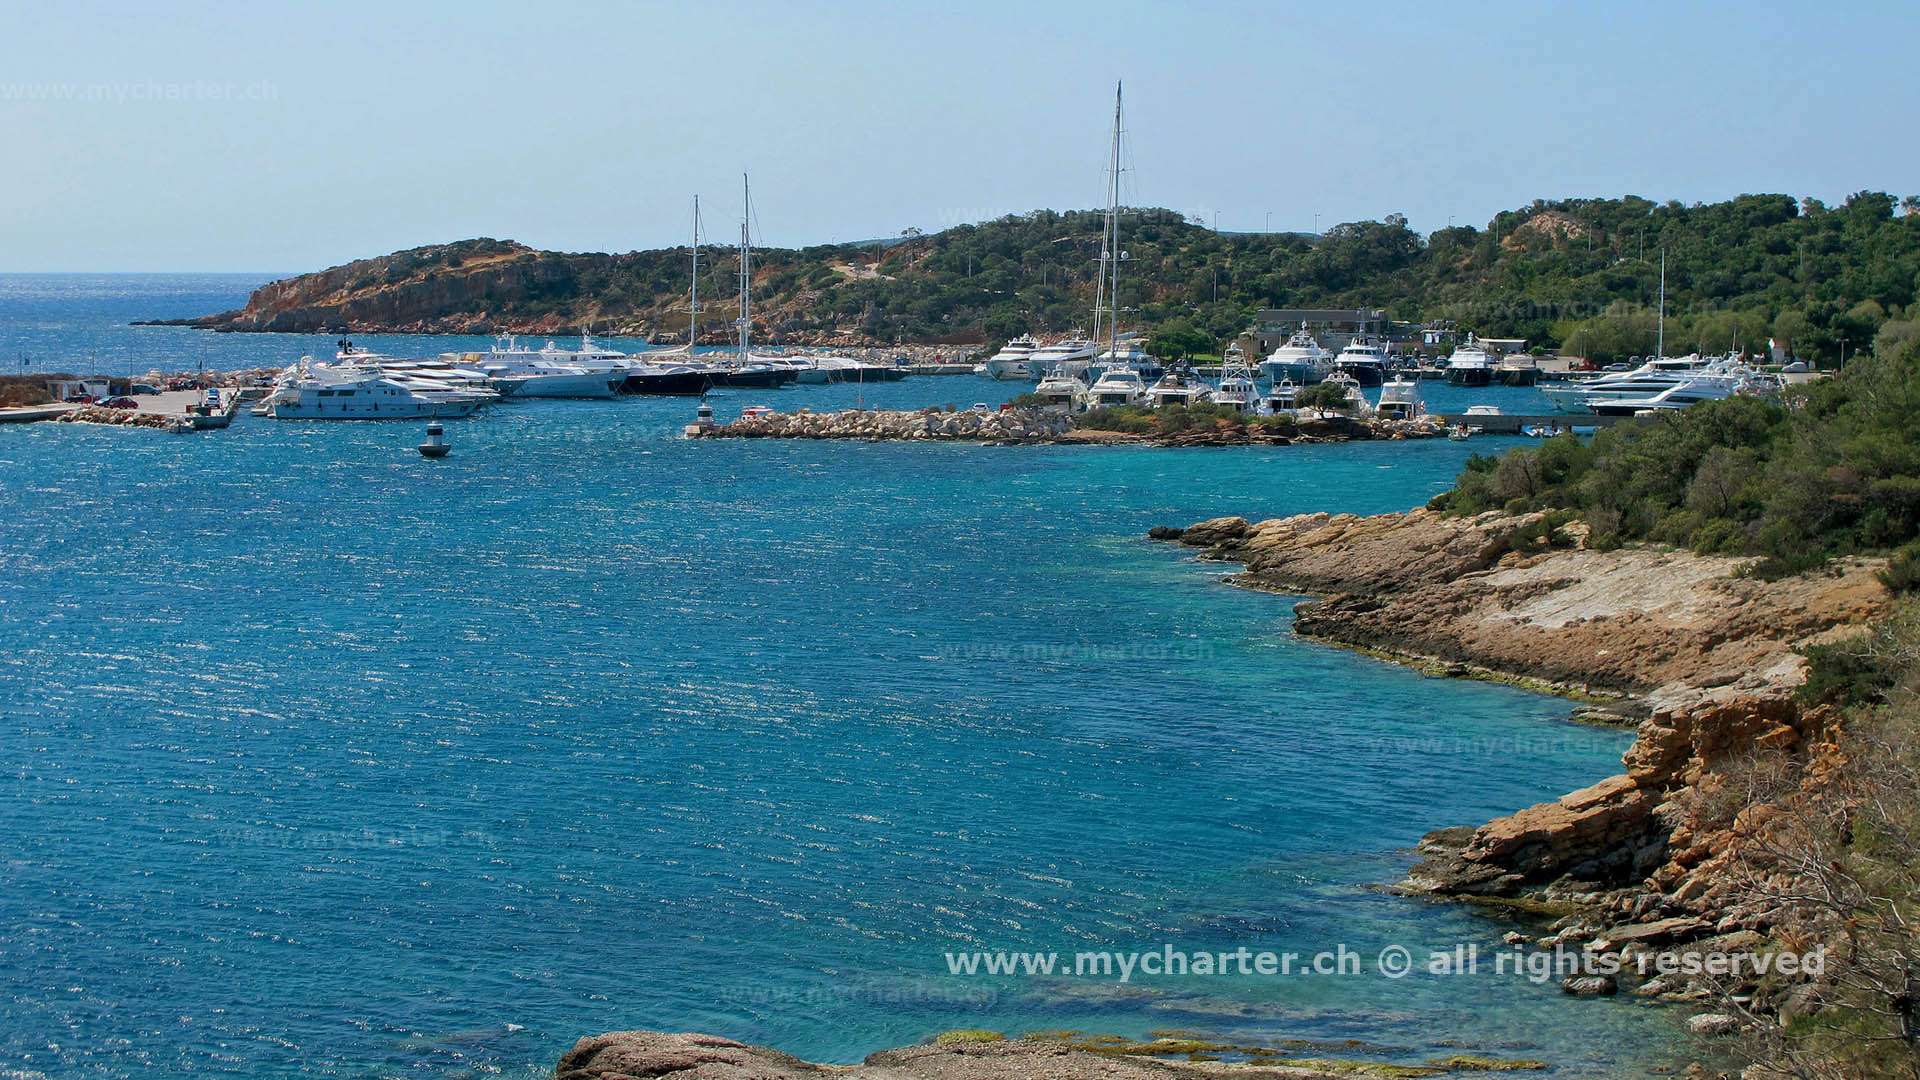 Griechenland - Vouliagme